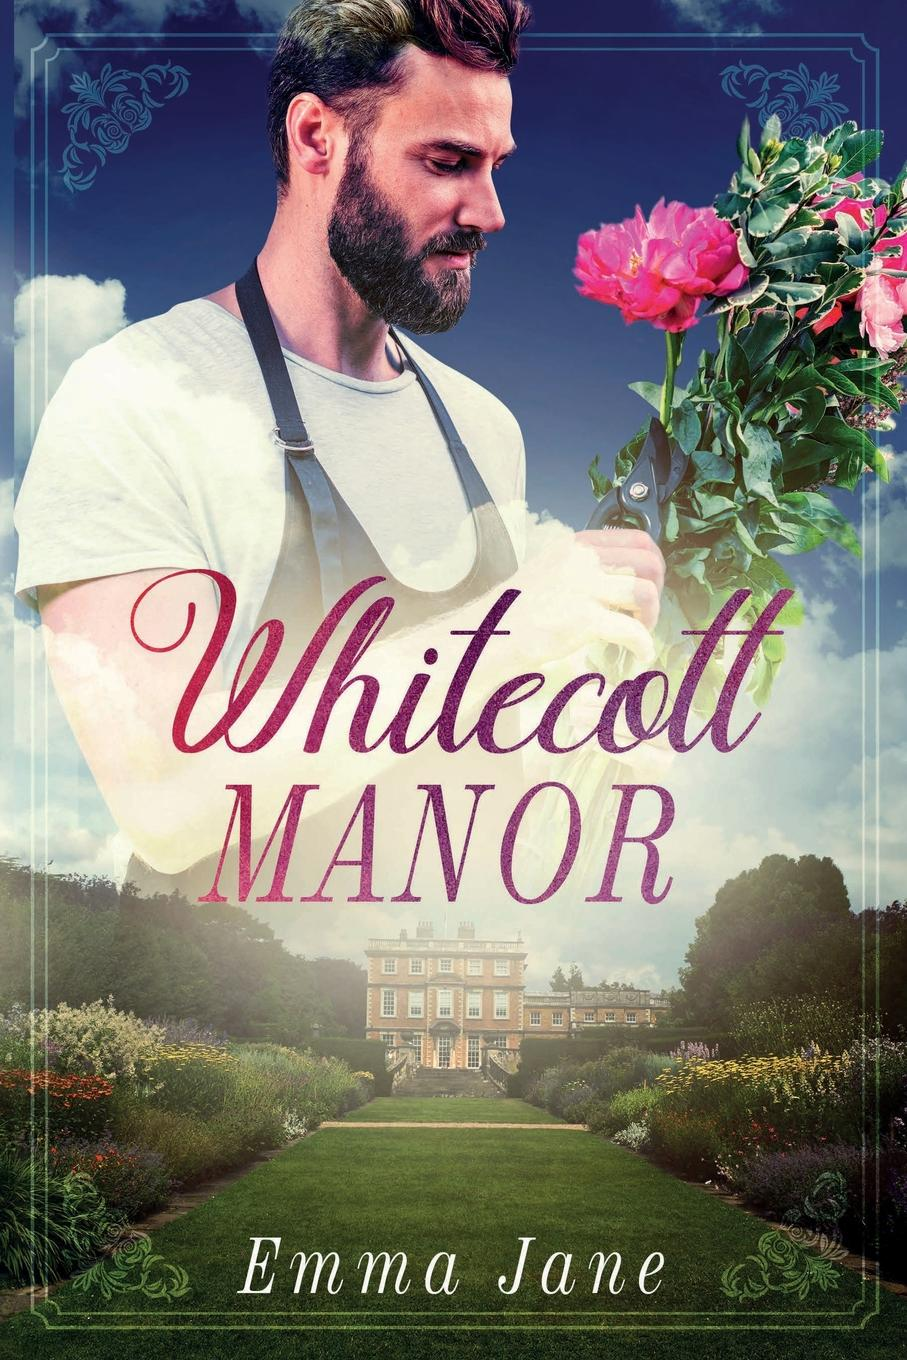 Emma Jane Whitecott Manor catherine george the mistress of his manor